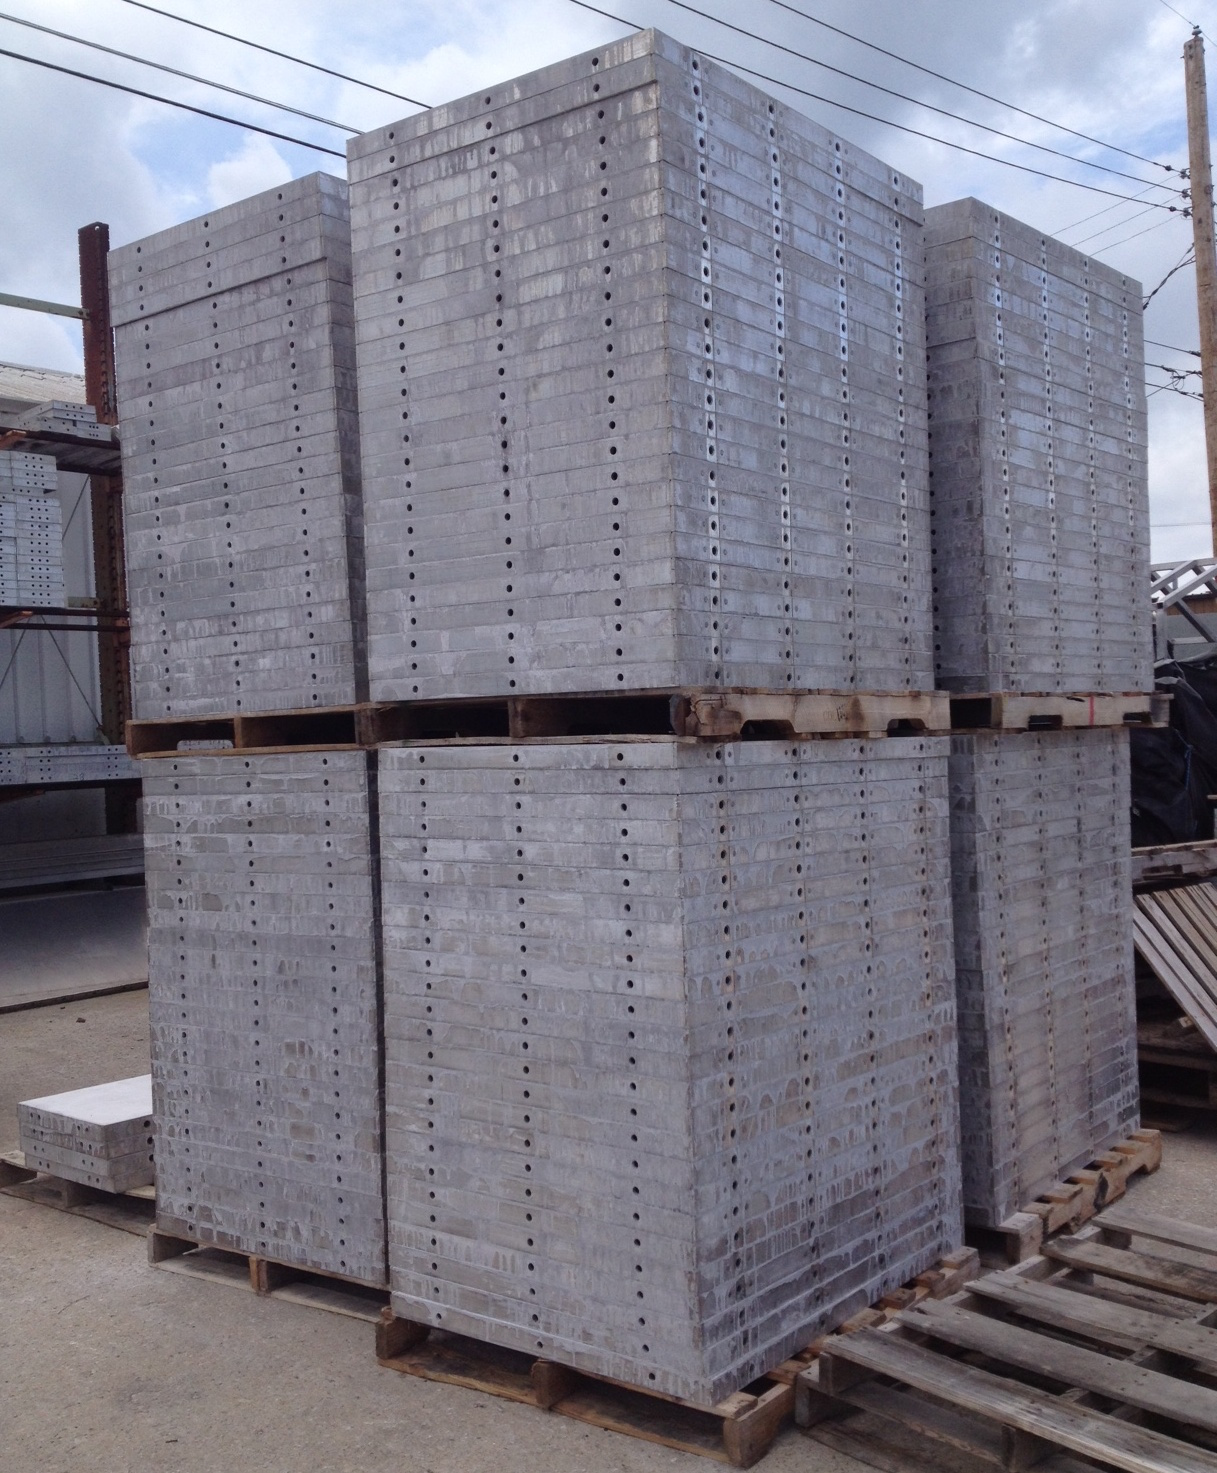 Smooth ft aluminum concrete forms in stock hole